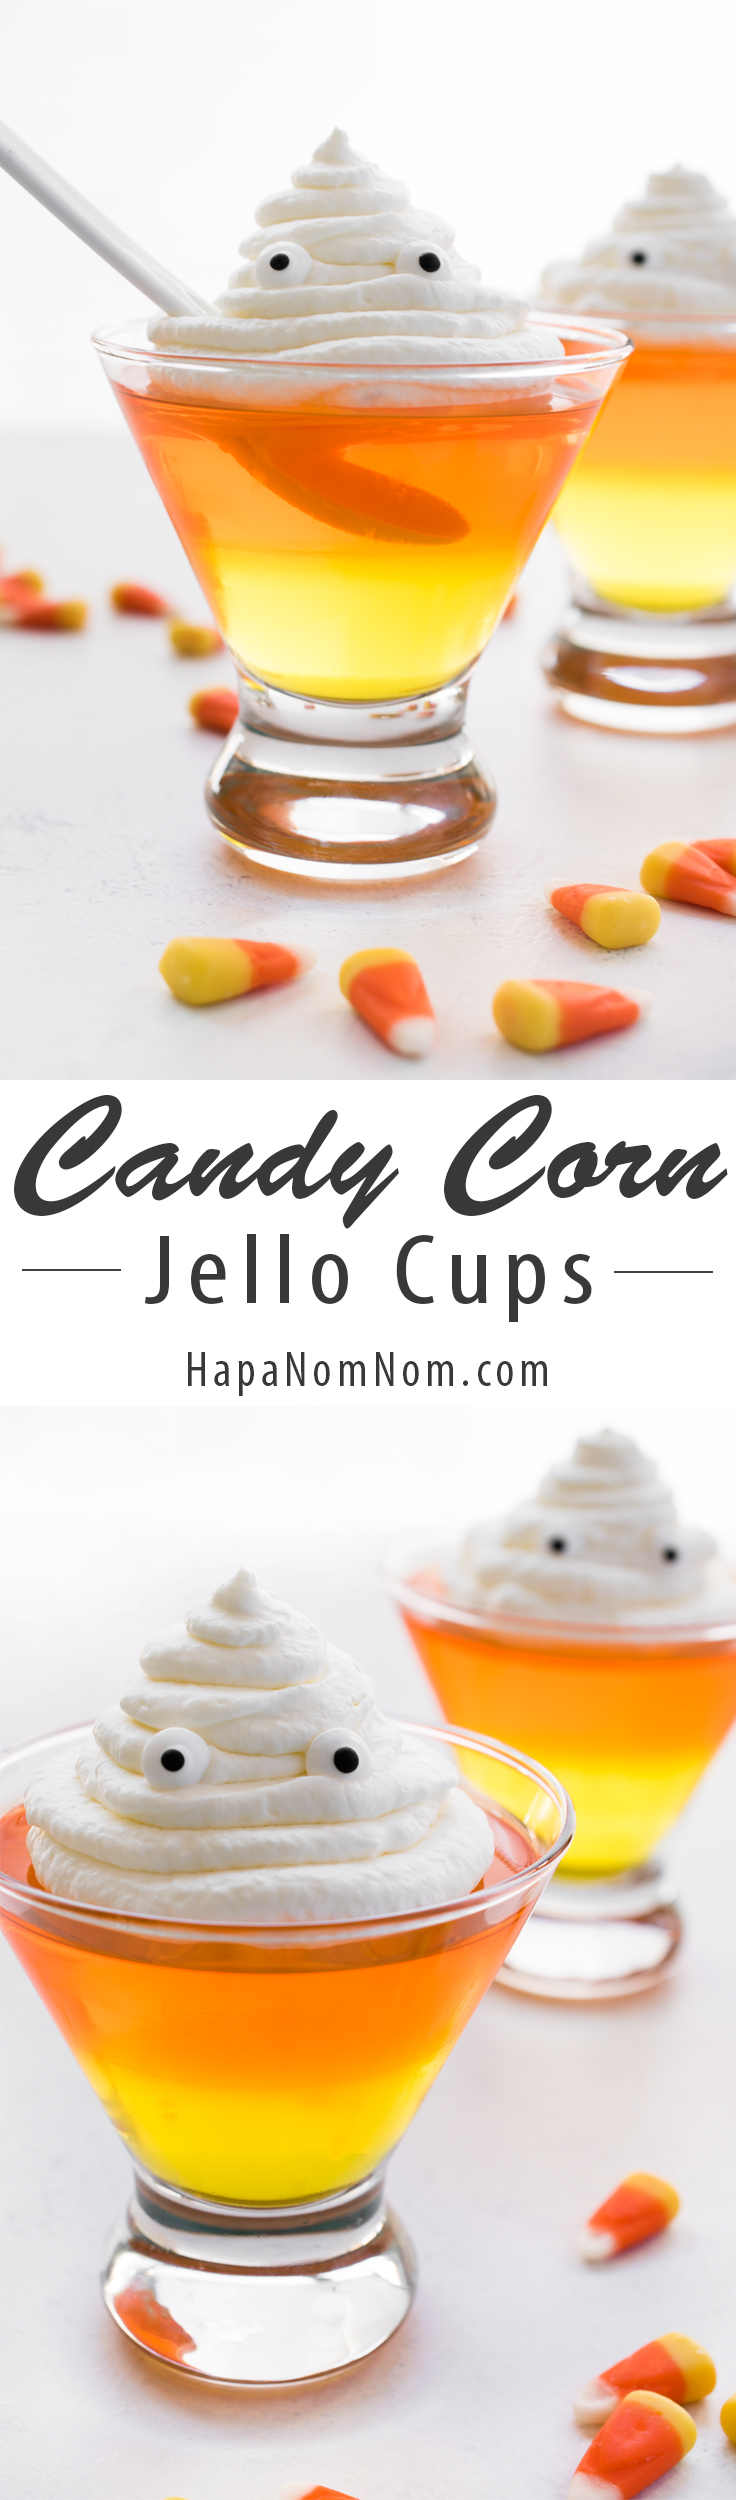 Candy Corn Jello Cups - a fun and easy Halloween dessert!